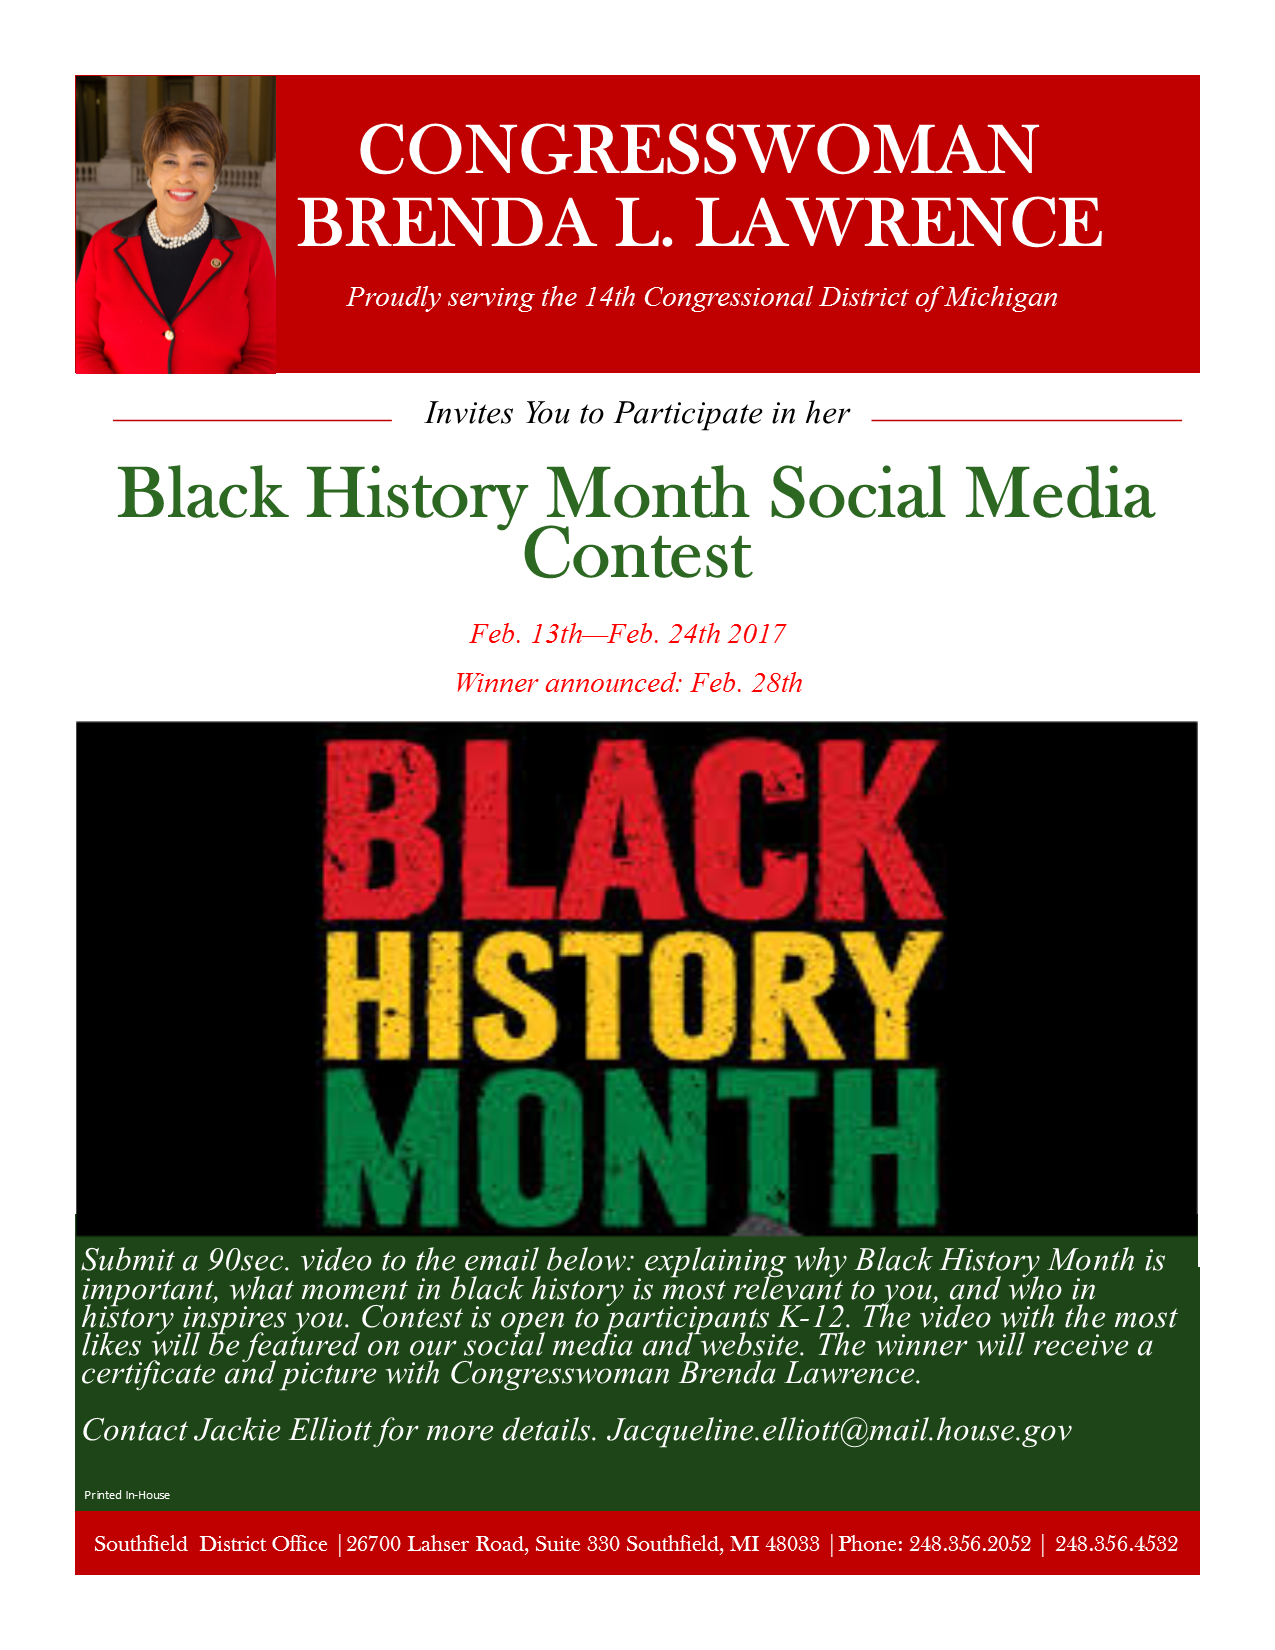 Black History Month Competition Flyer